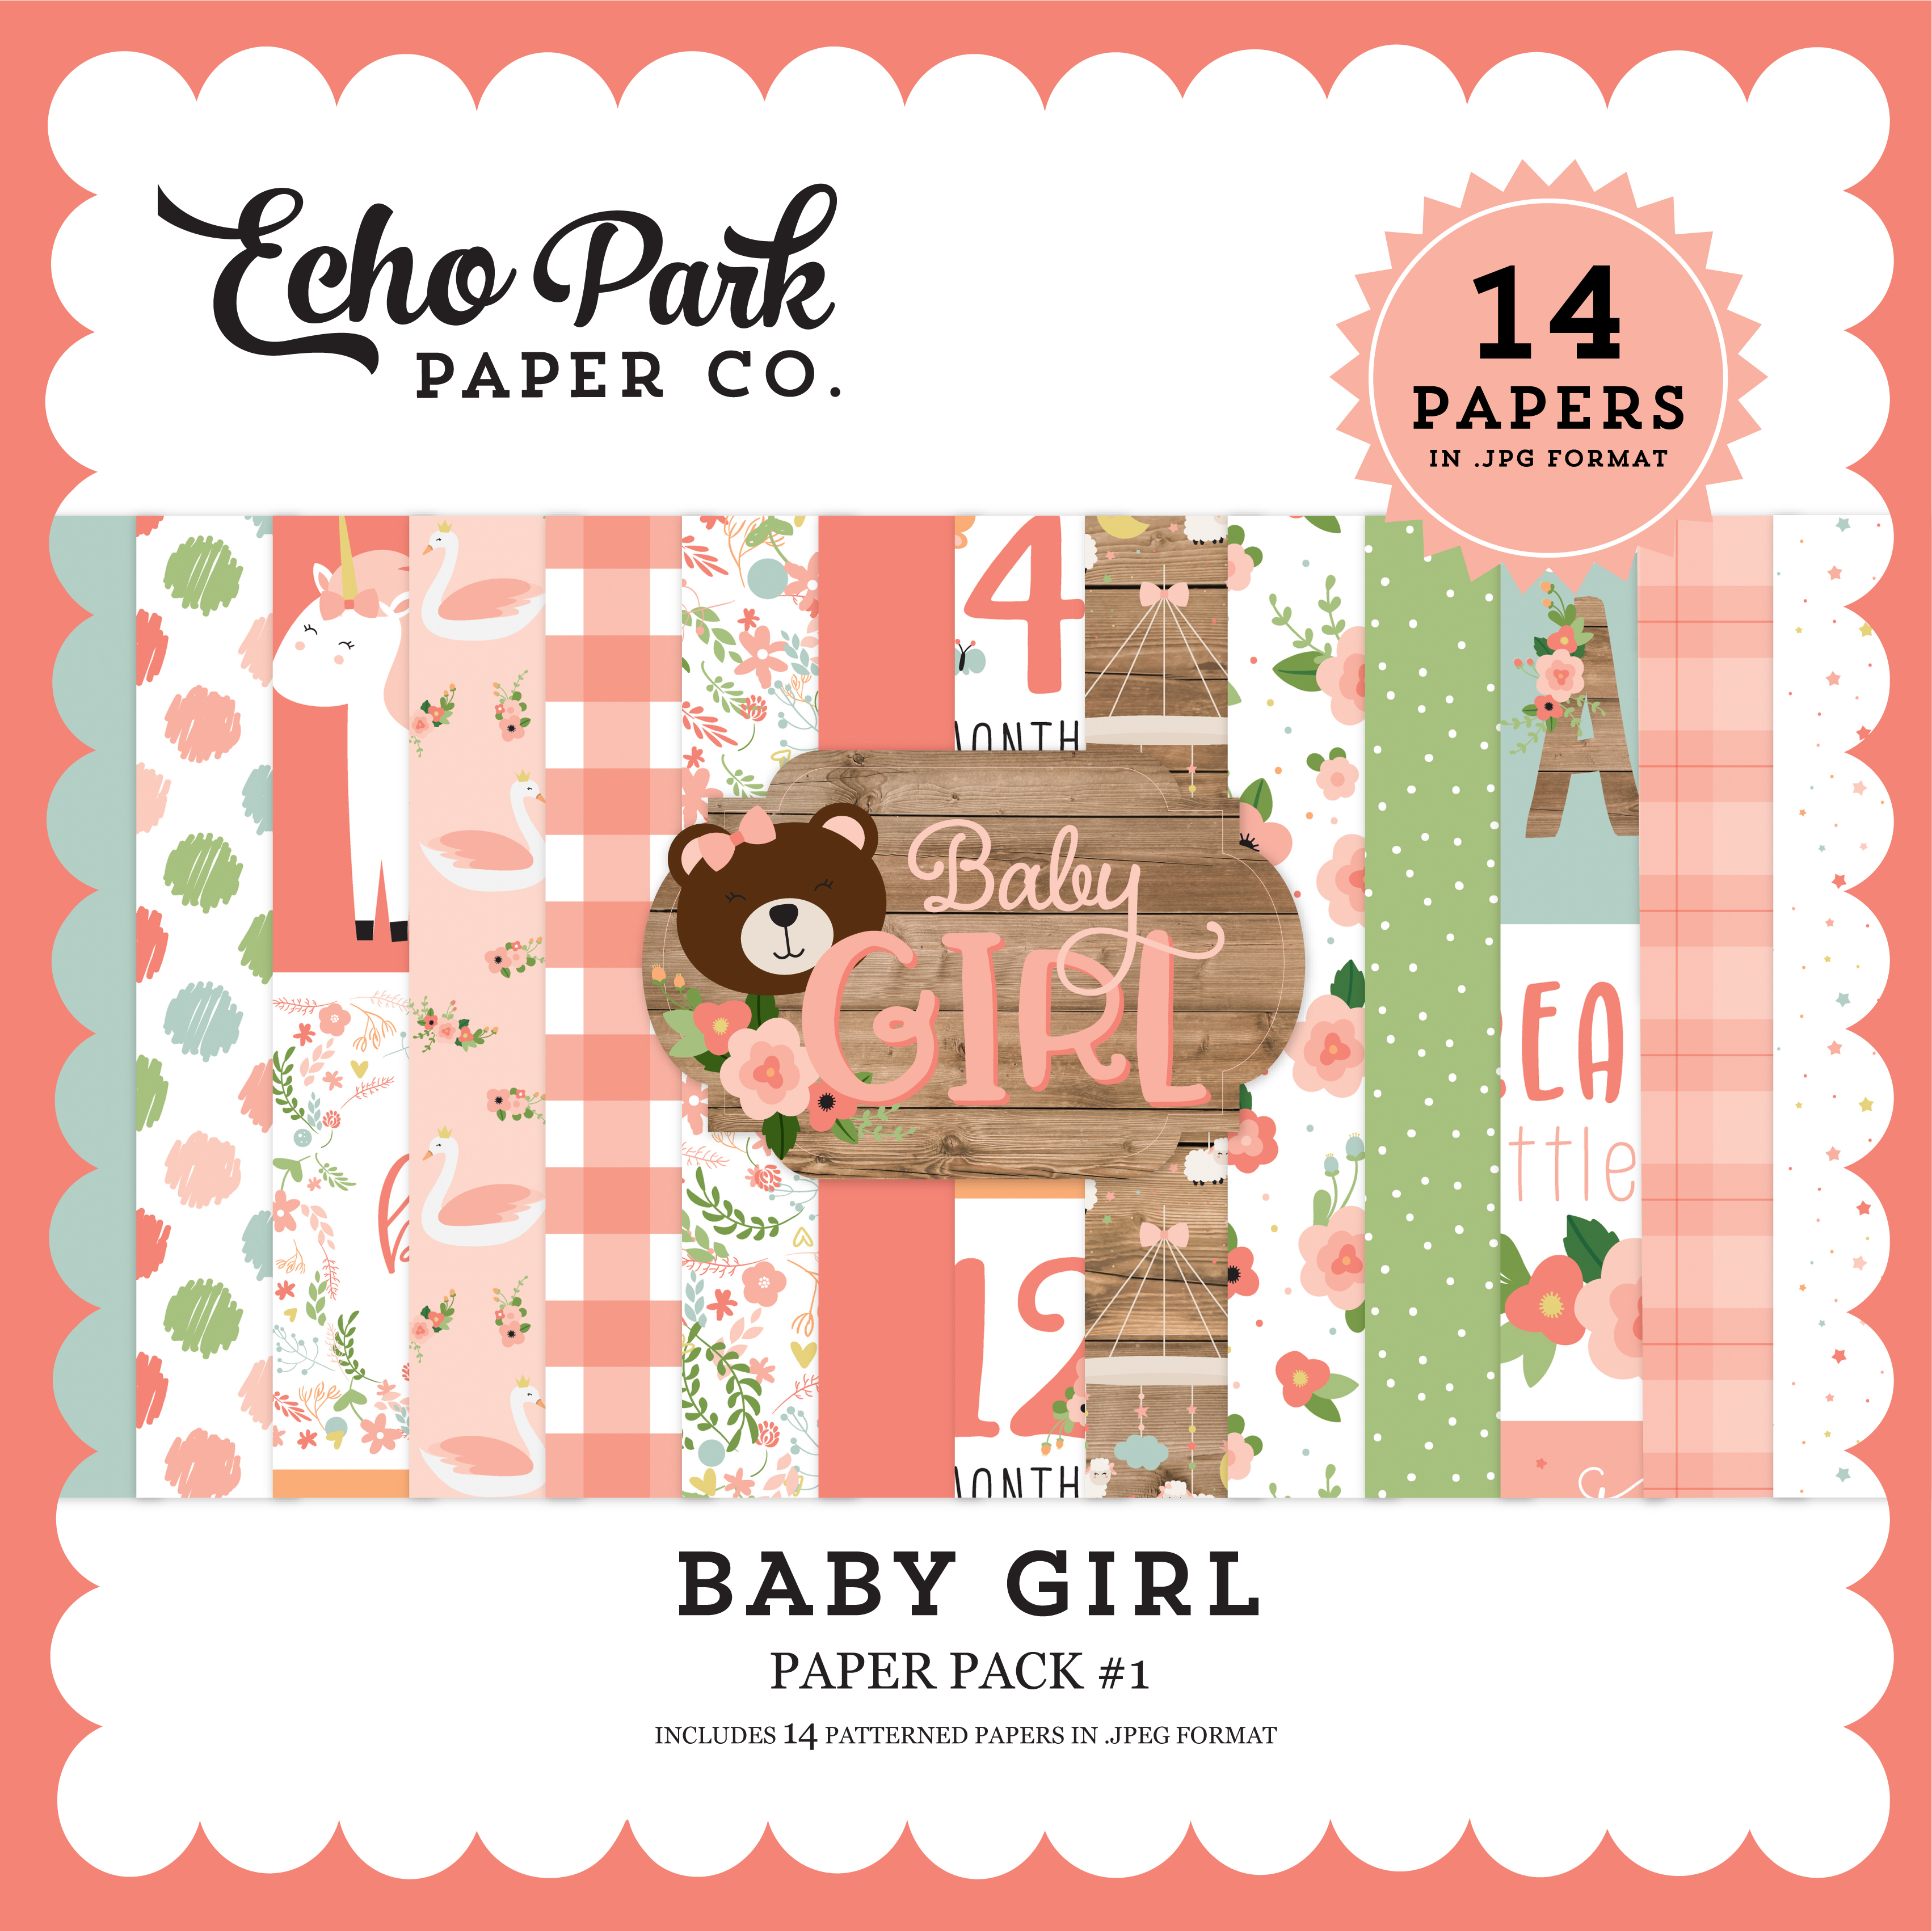 Baby Girl Paper Pack #1